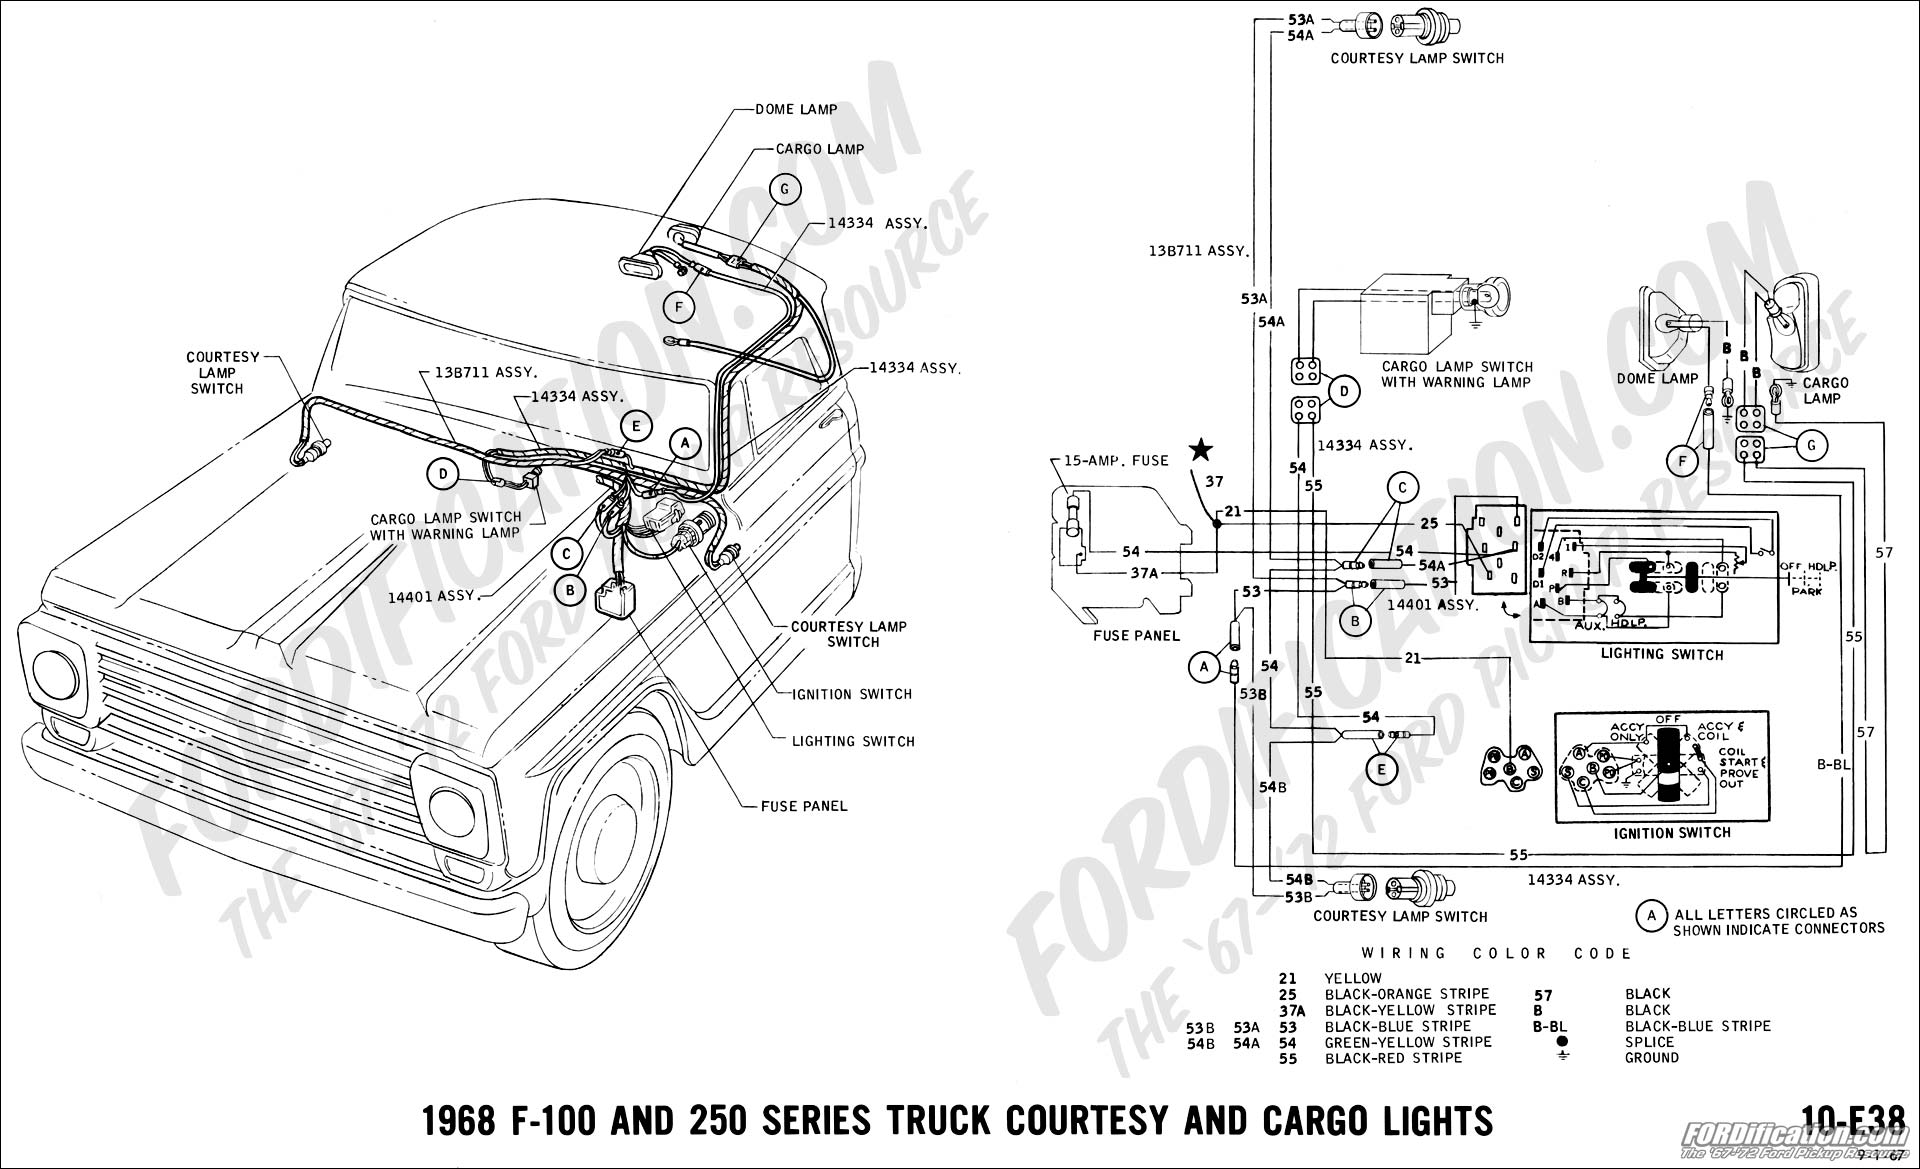 1997 Ford F 250 Wiring Diagram Download Libraries For F350 Free Rear Fuel Tank Library1968 100 And